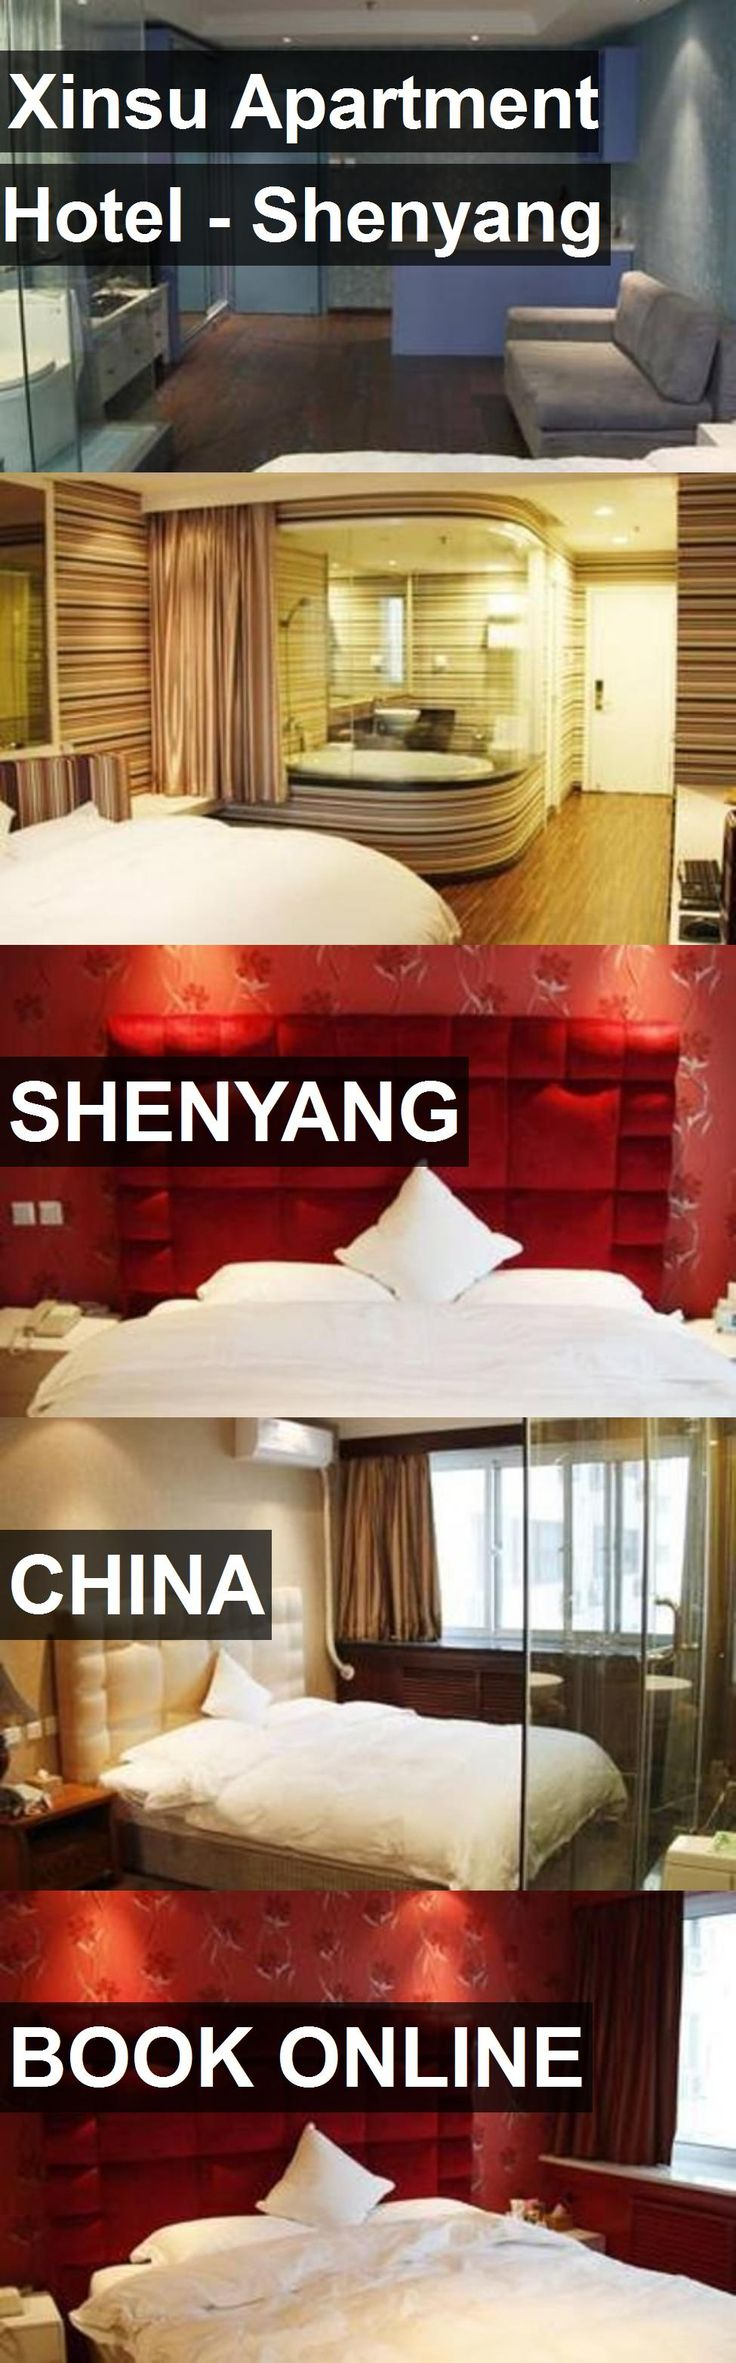 Hotel Xinsu Apartment Hotel - Shenyang in Shenyang, China. For more information, photos, reviews and best prices please follow the link. #China #Shenyang #XinsuApartmentHotel-Shenyang #hotel #travel #vacation